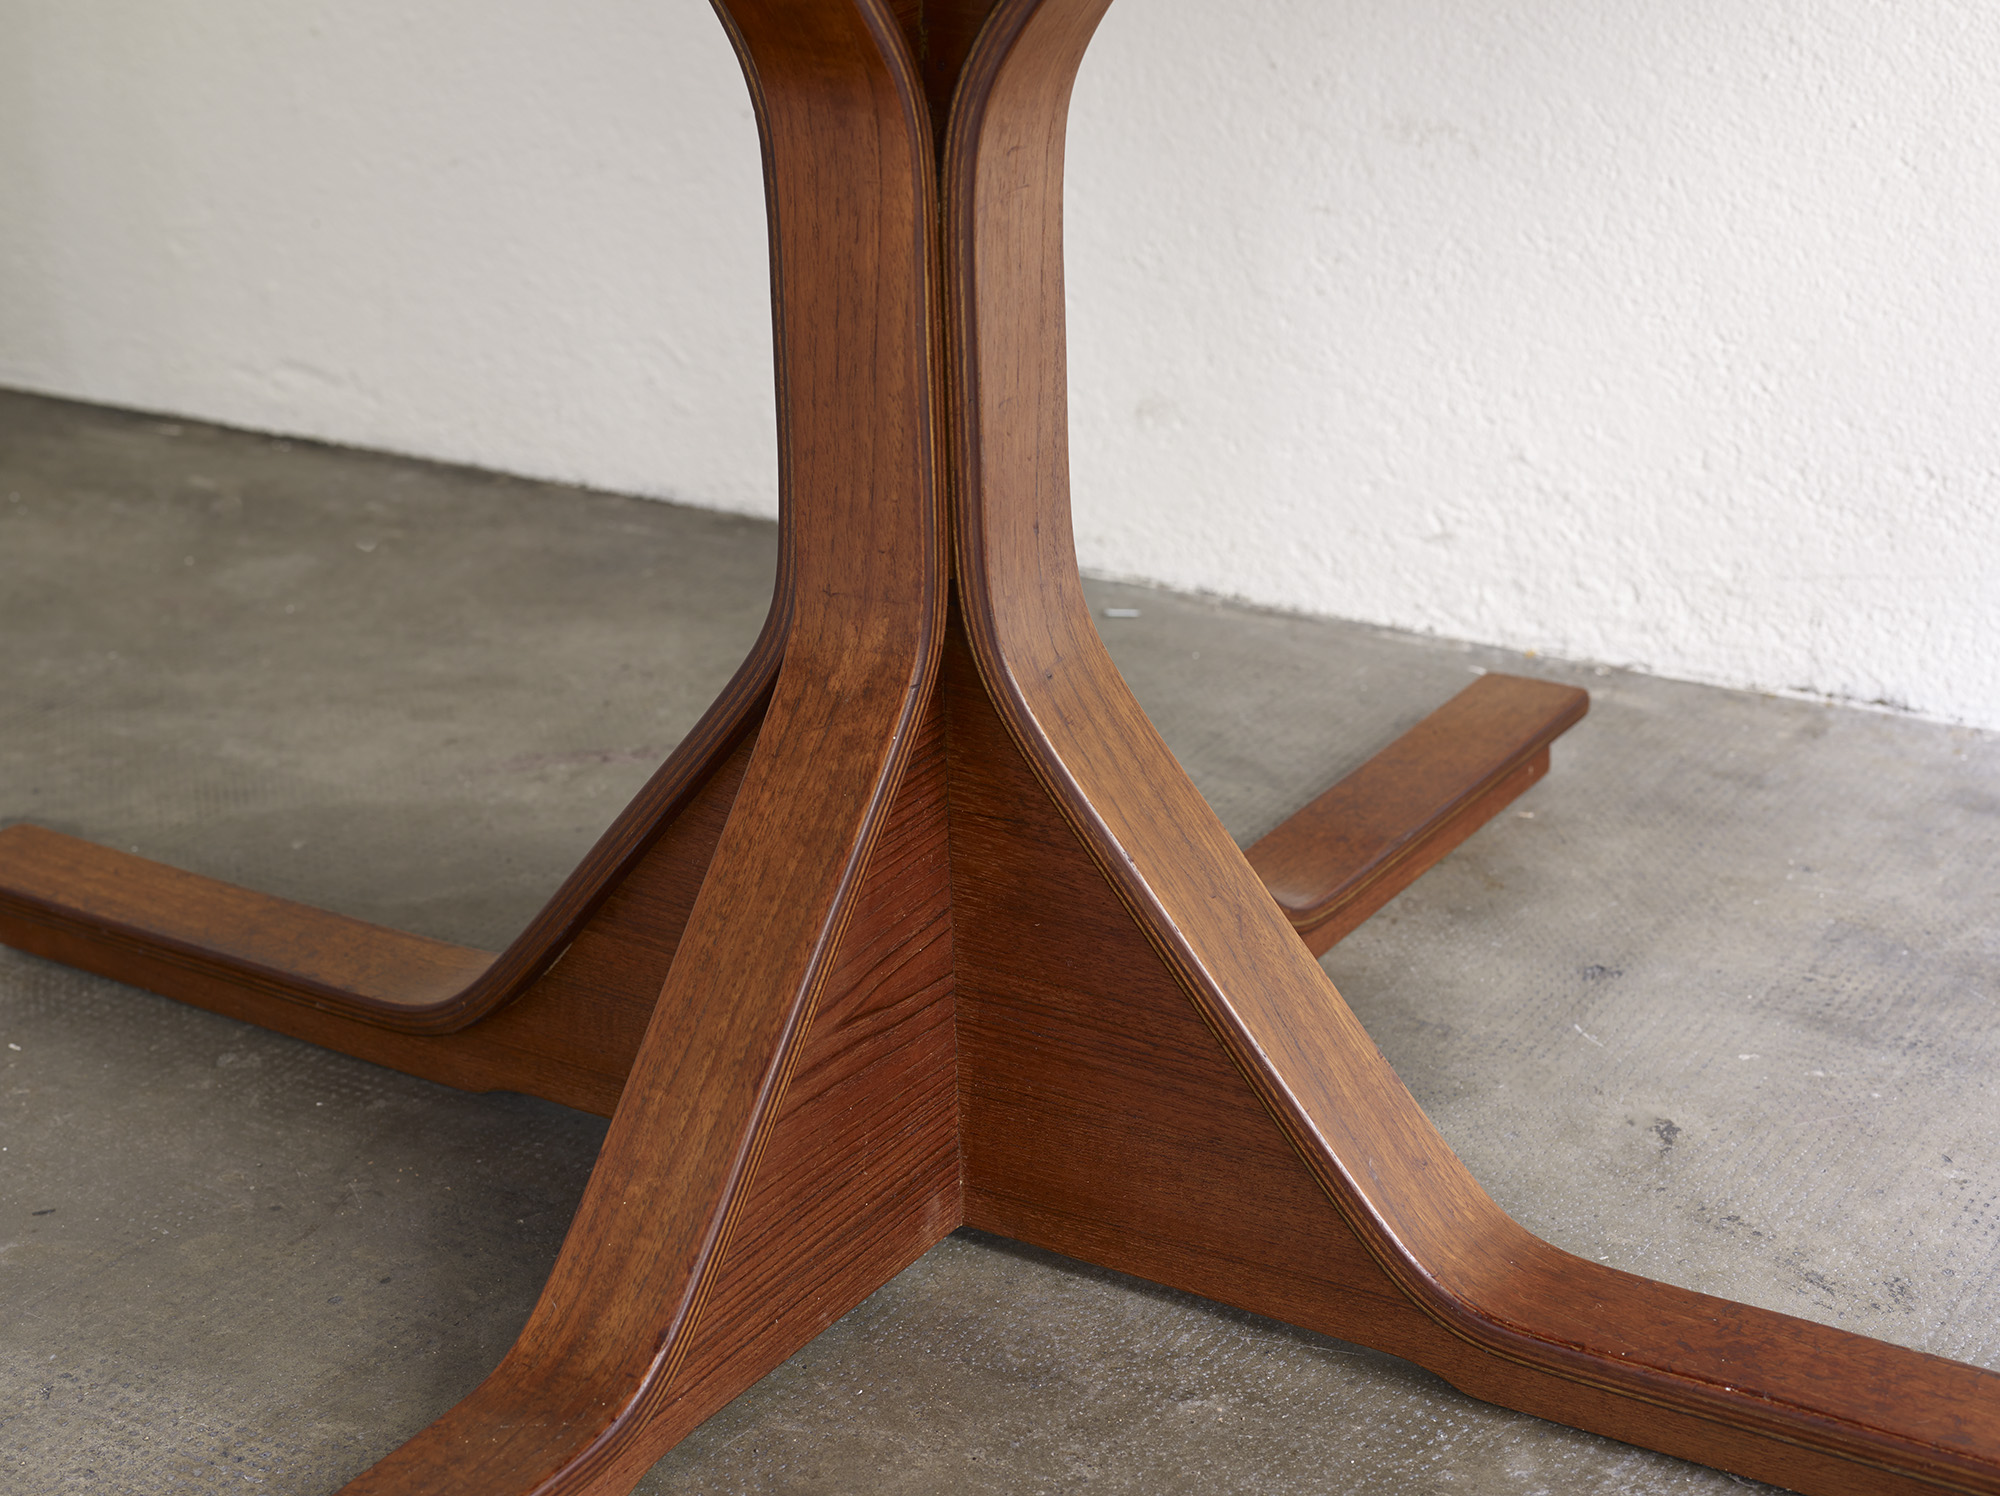 teak-dining-table-model-522-by-gianfranco-frattini-image-04